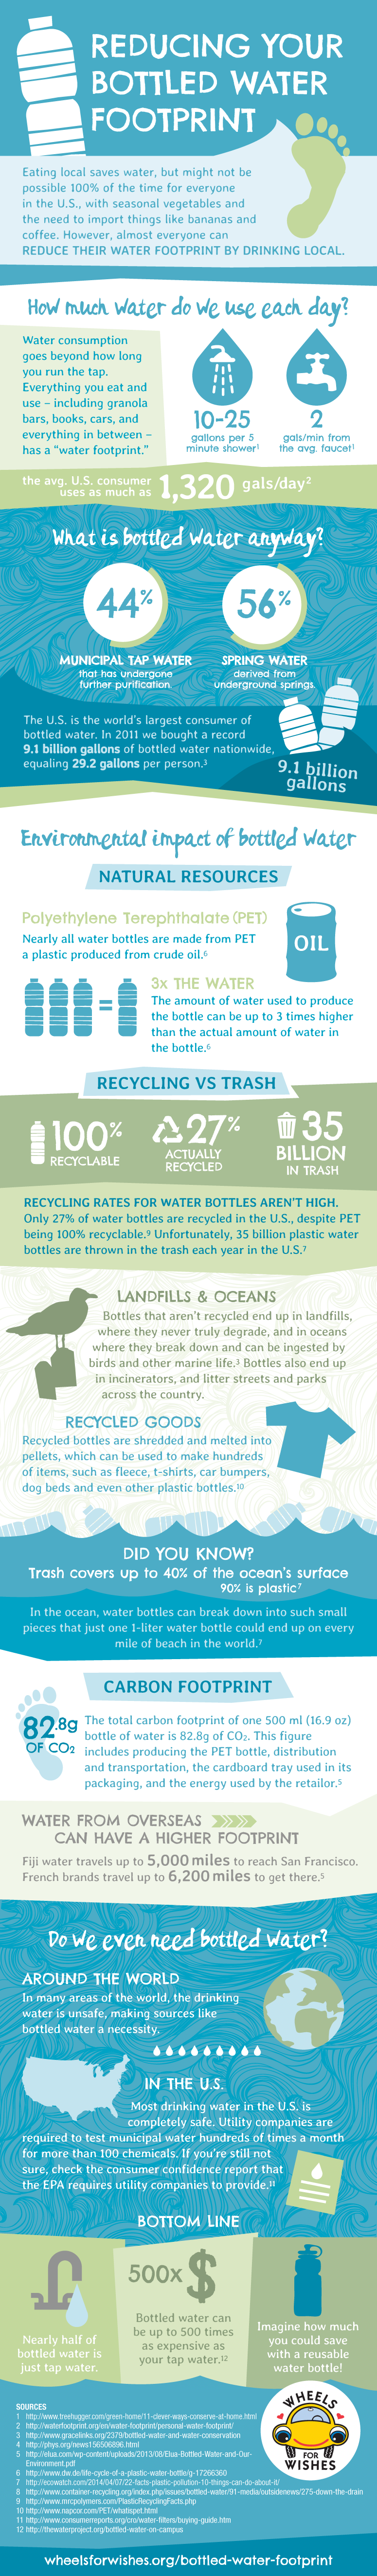 reduce water usage infographic